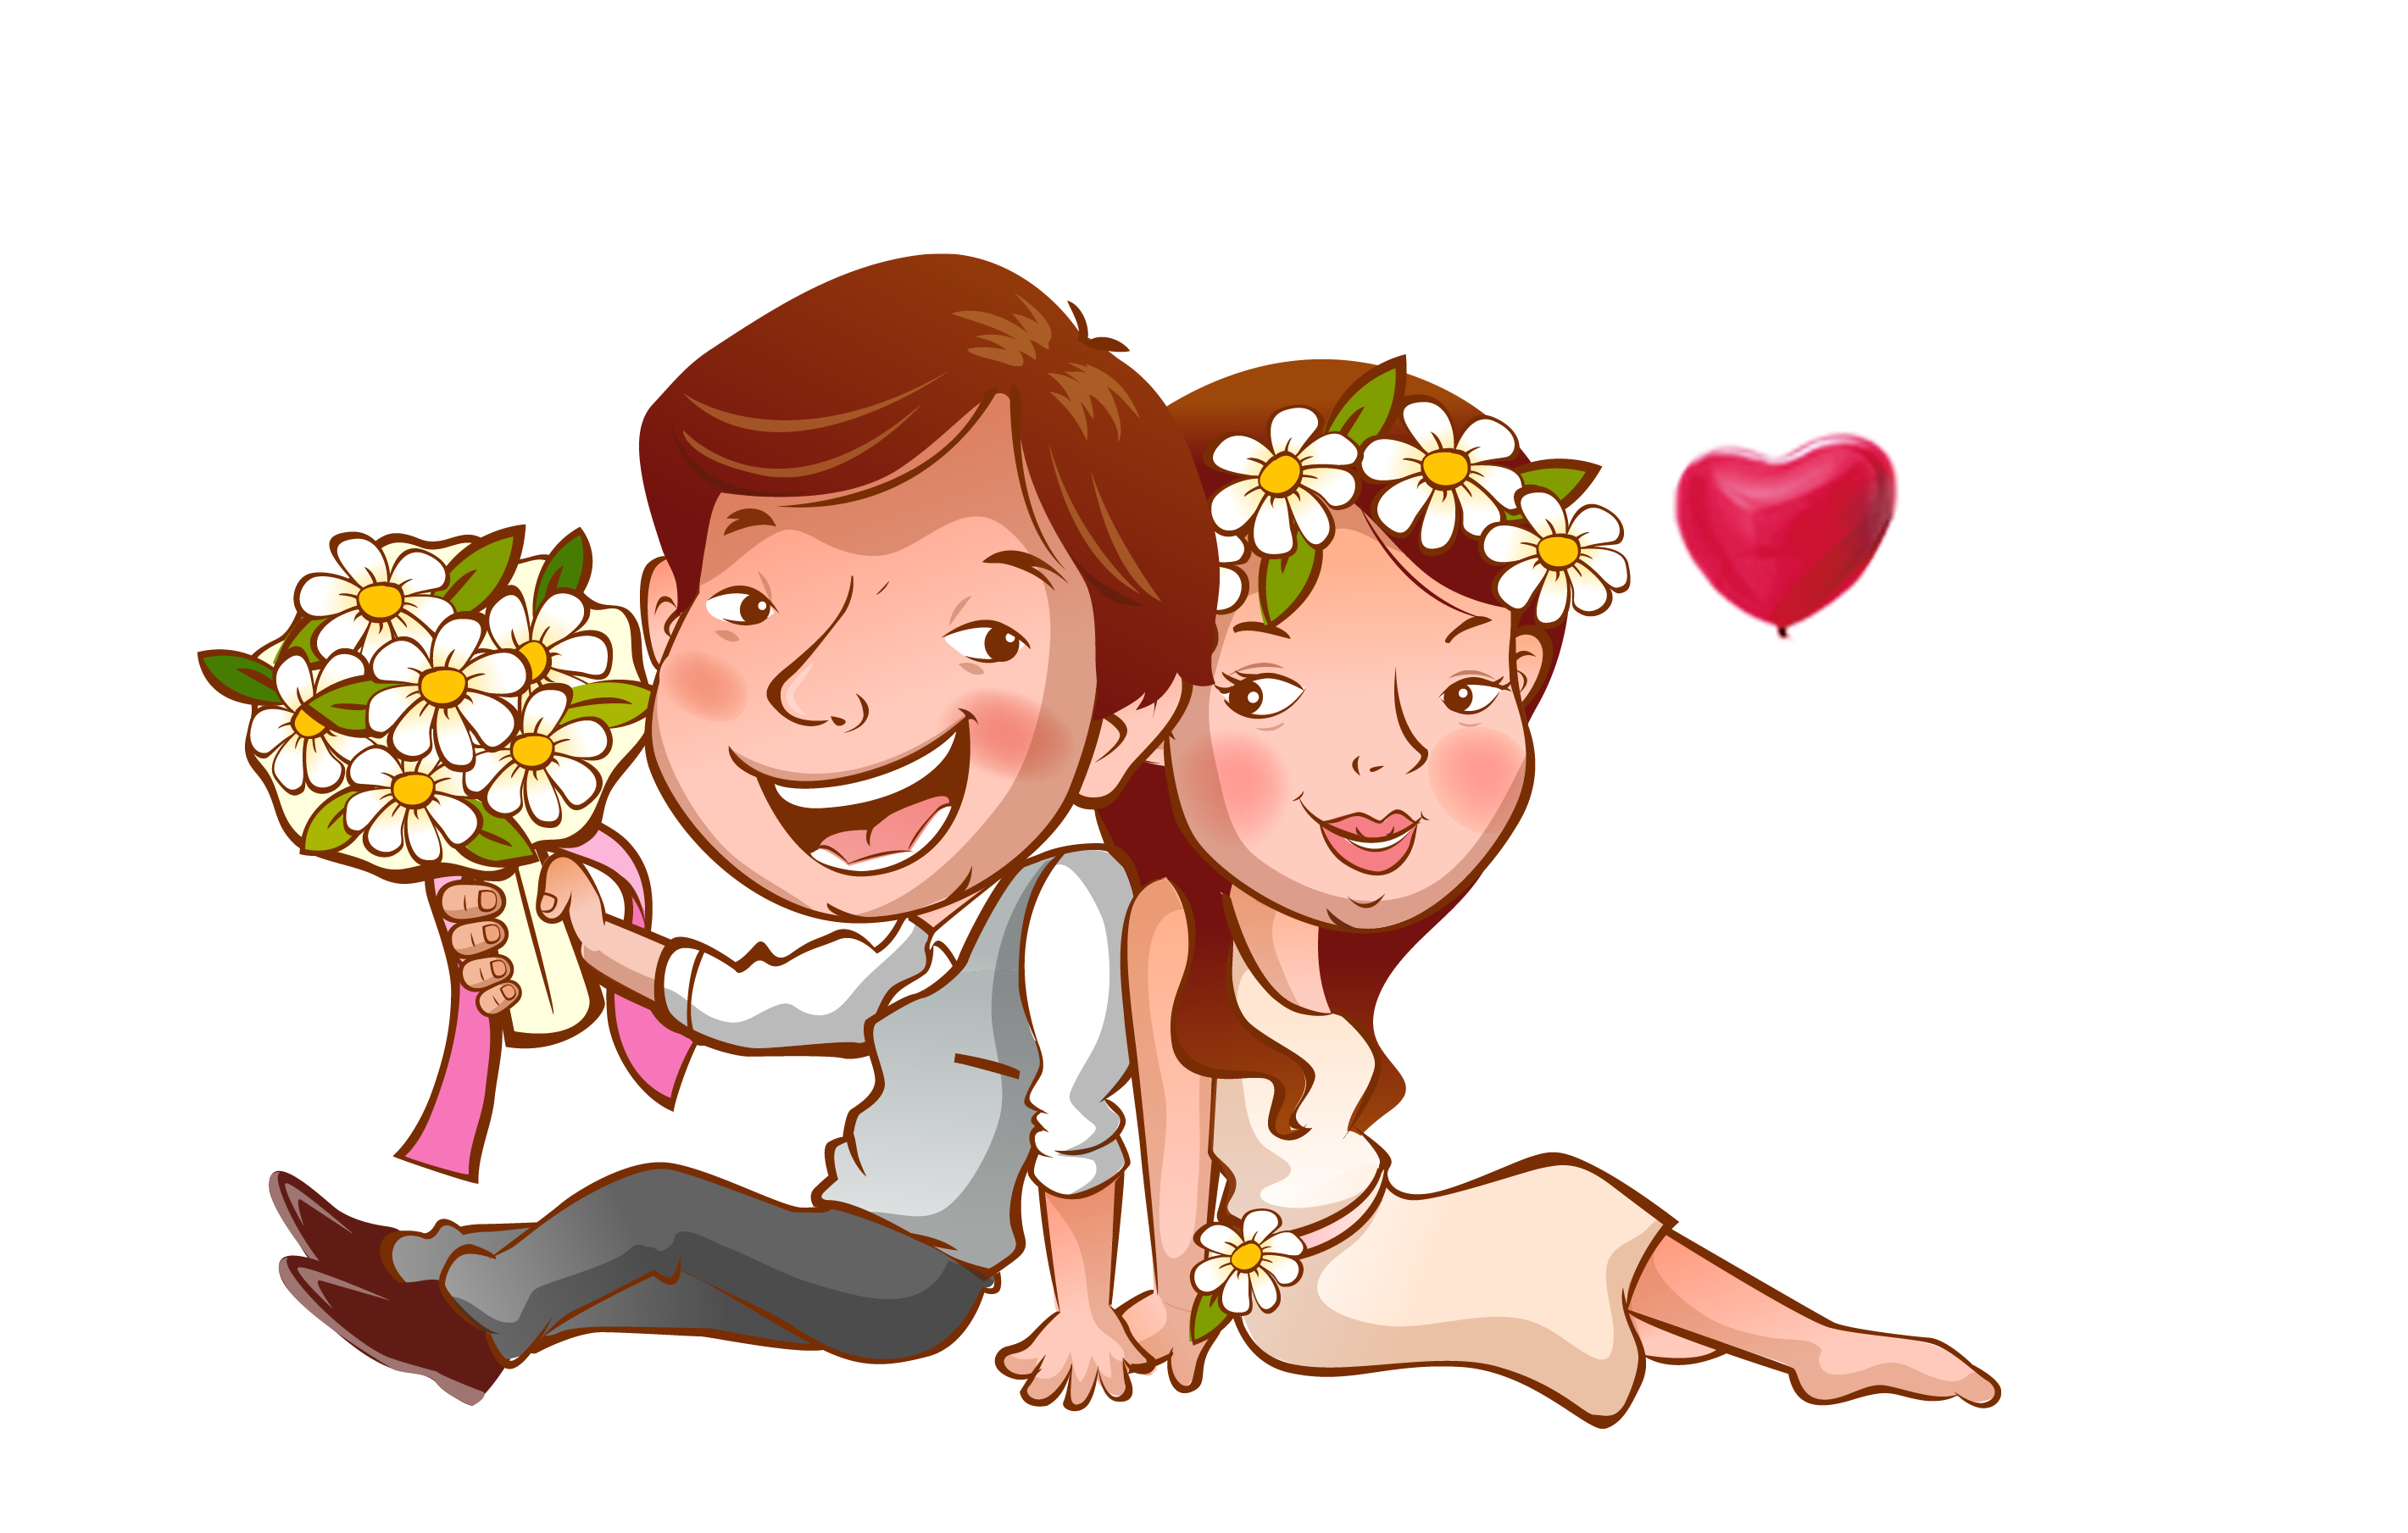 Valentines day couple png. Wedding invitation template cartoon